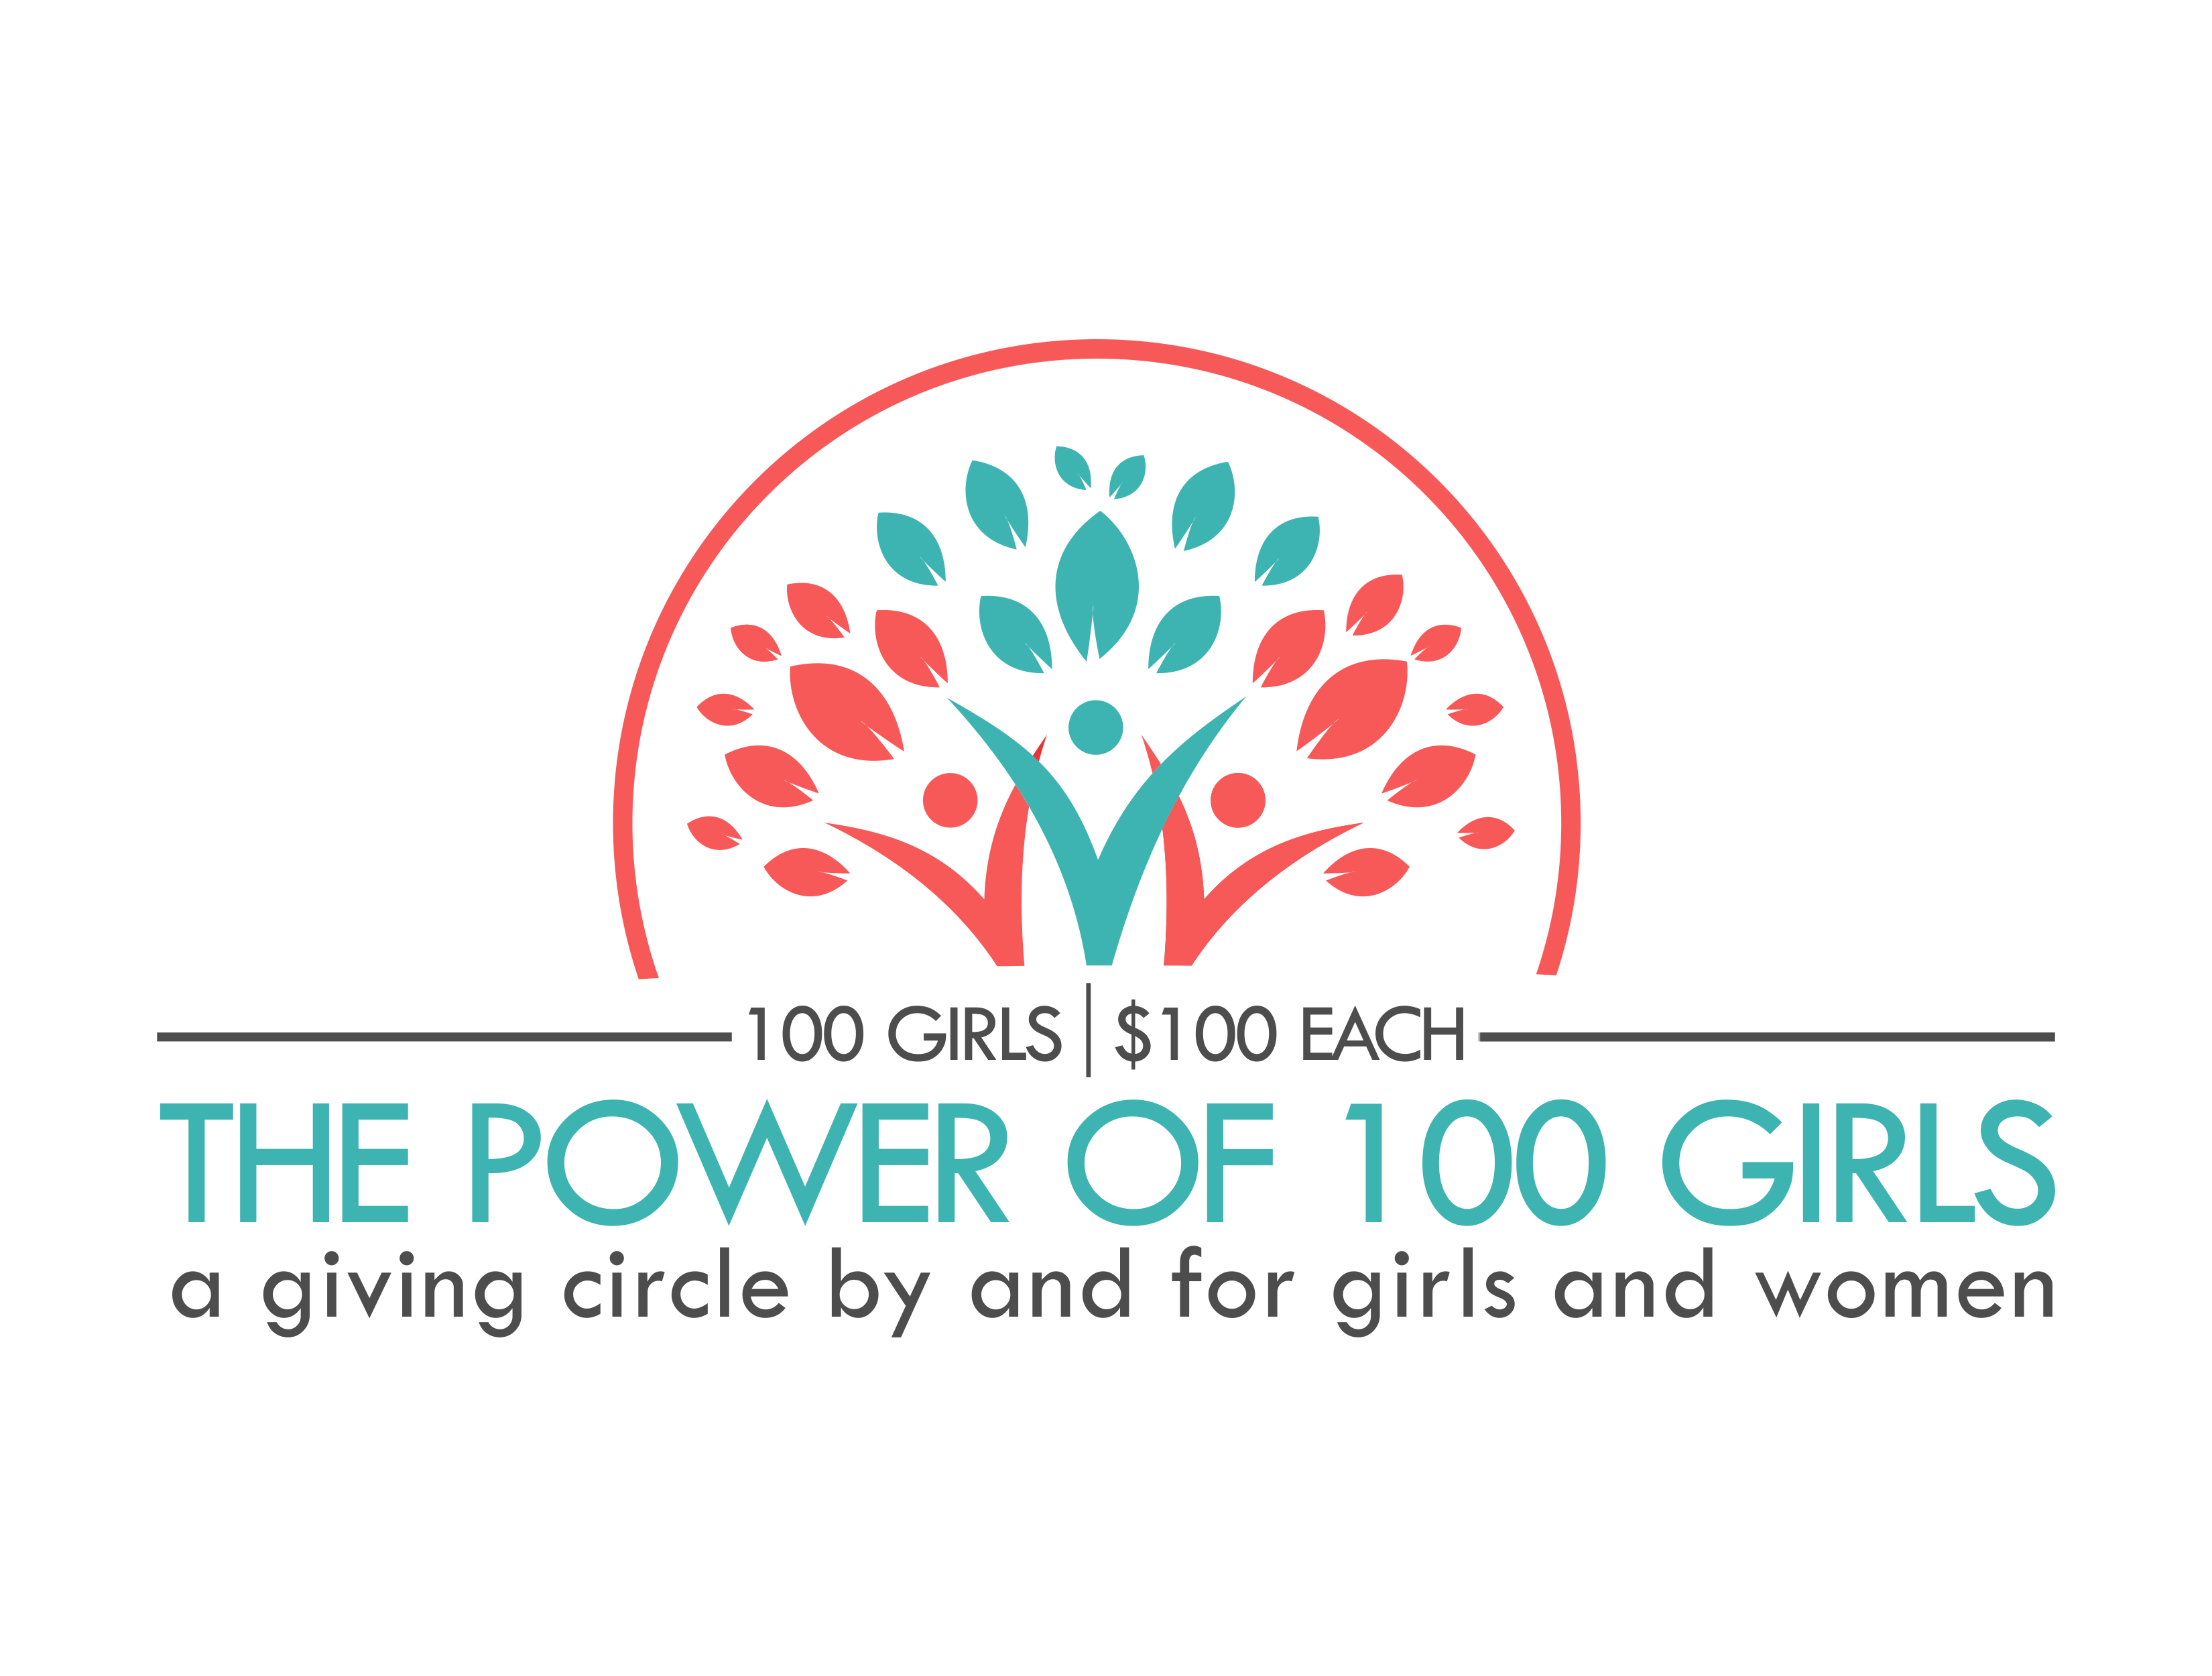 The Power of 100 Girls Seeks Inspiring Youth to Make a Difference in Their Communities